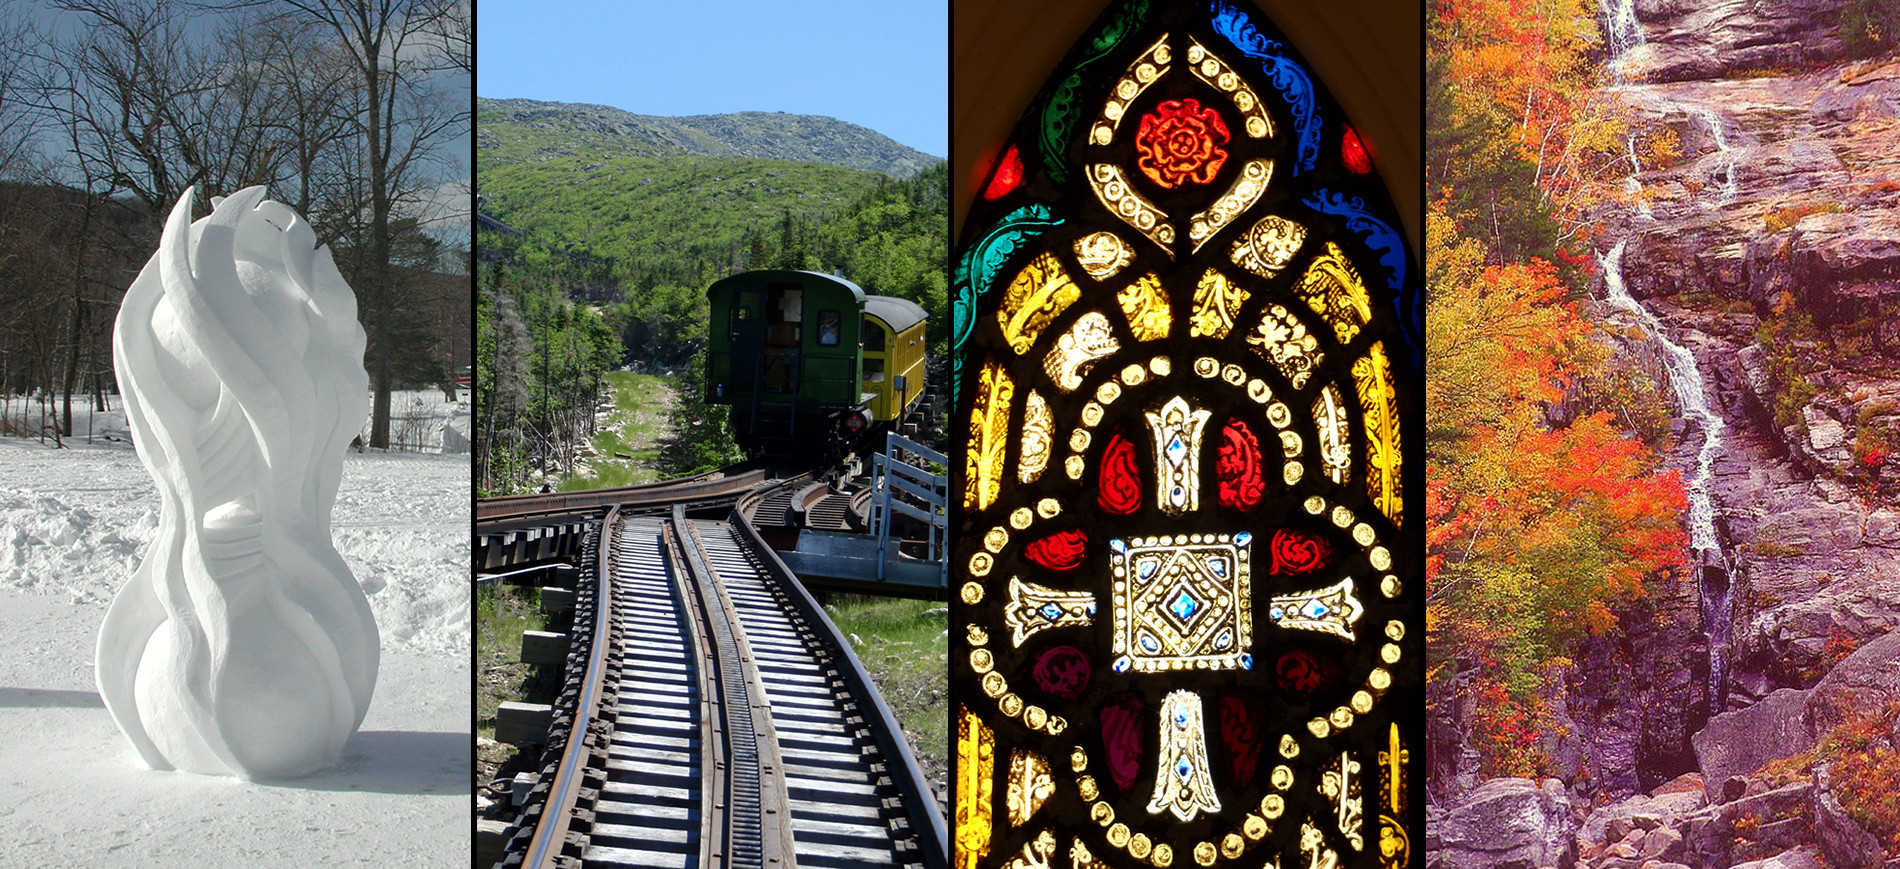 Collage of snow sculpture cog railway stained glass Silver Cascade waterfall